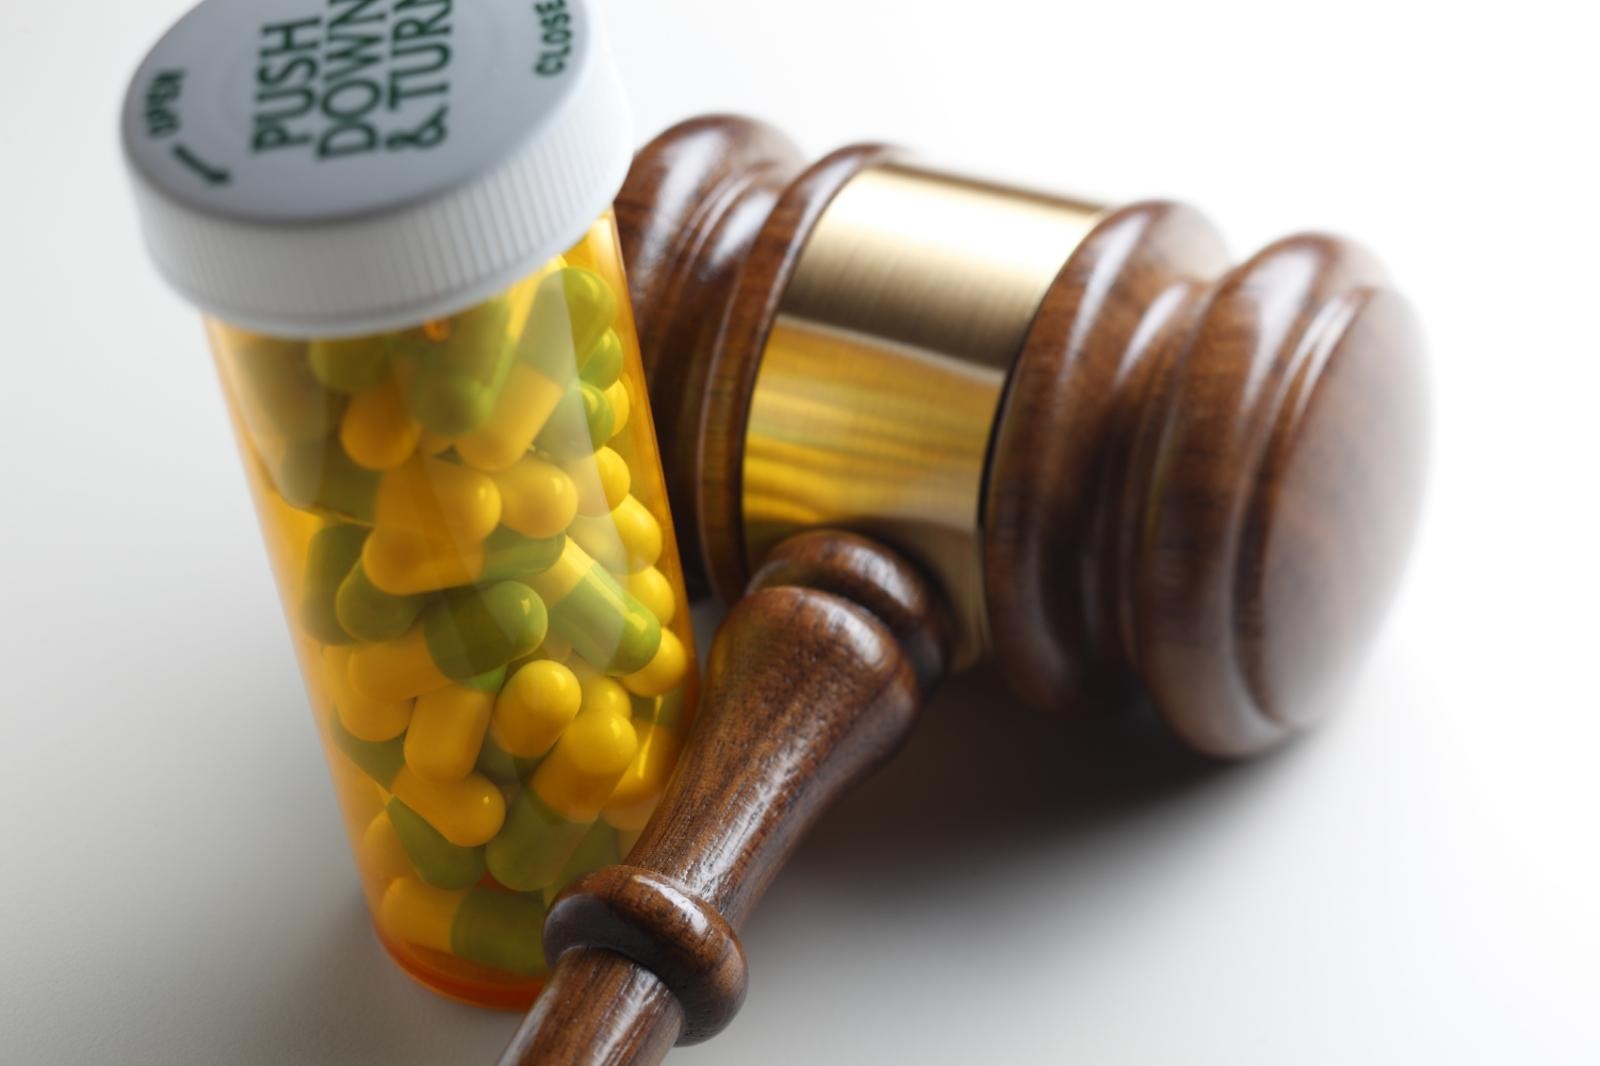 """Medicare Scam: Rhine Drug Company and Andrew """"Carter"""" Clements, Jr. Agreed to Pay to Resolve False Claims Act"""